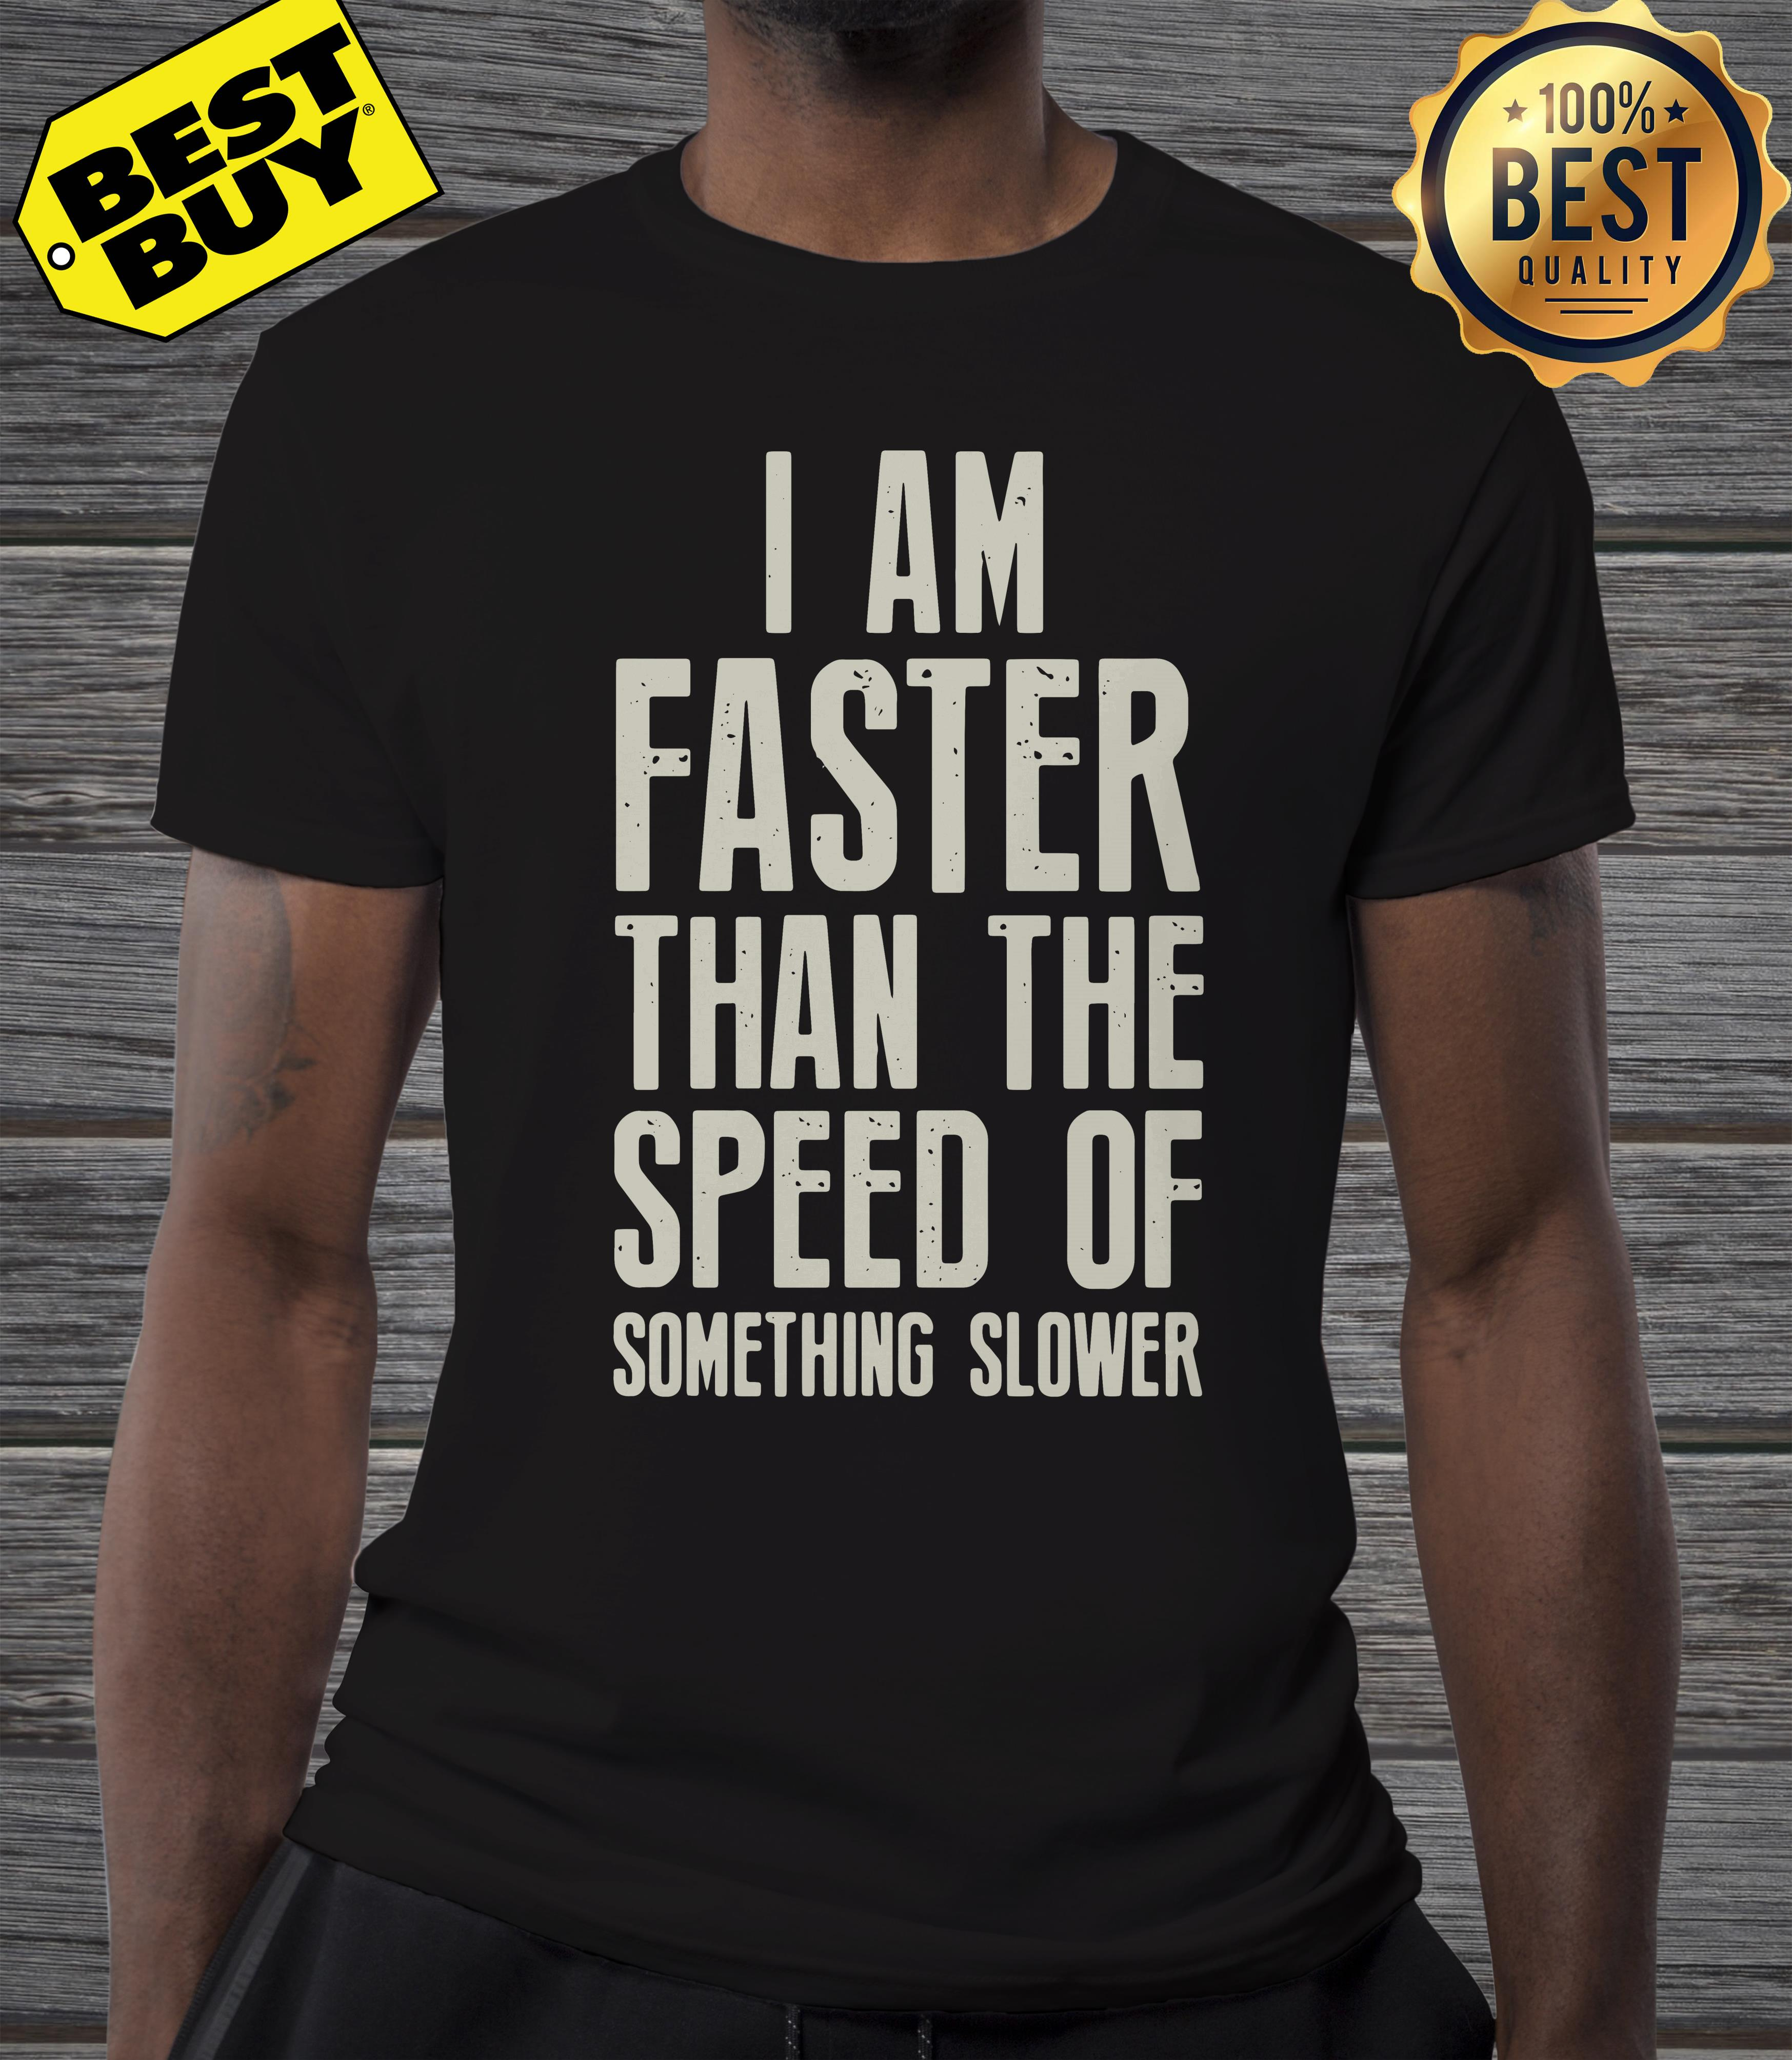 I am faster than the speed of something slower shirt